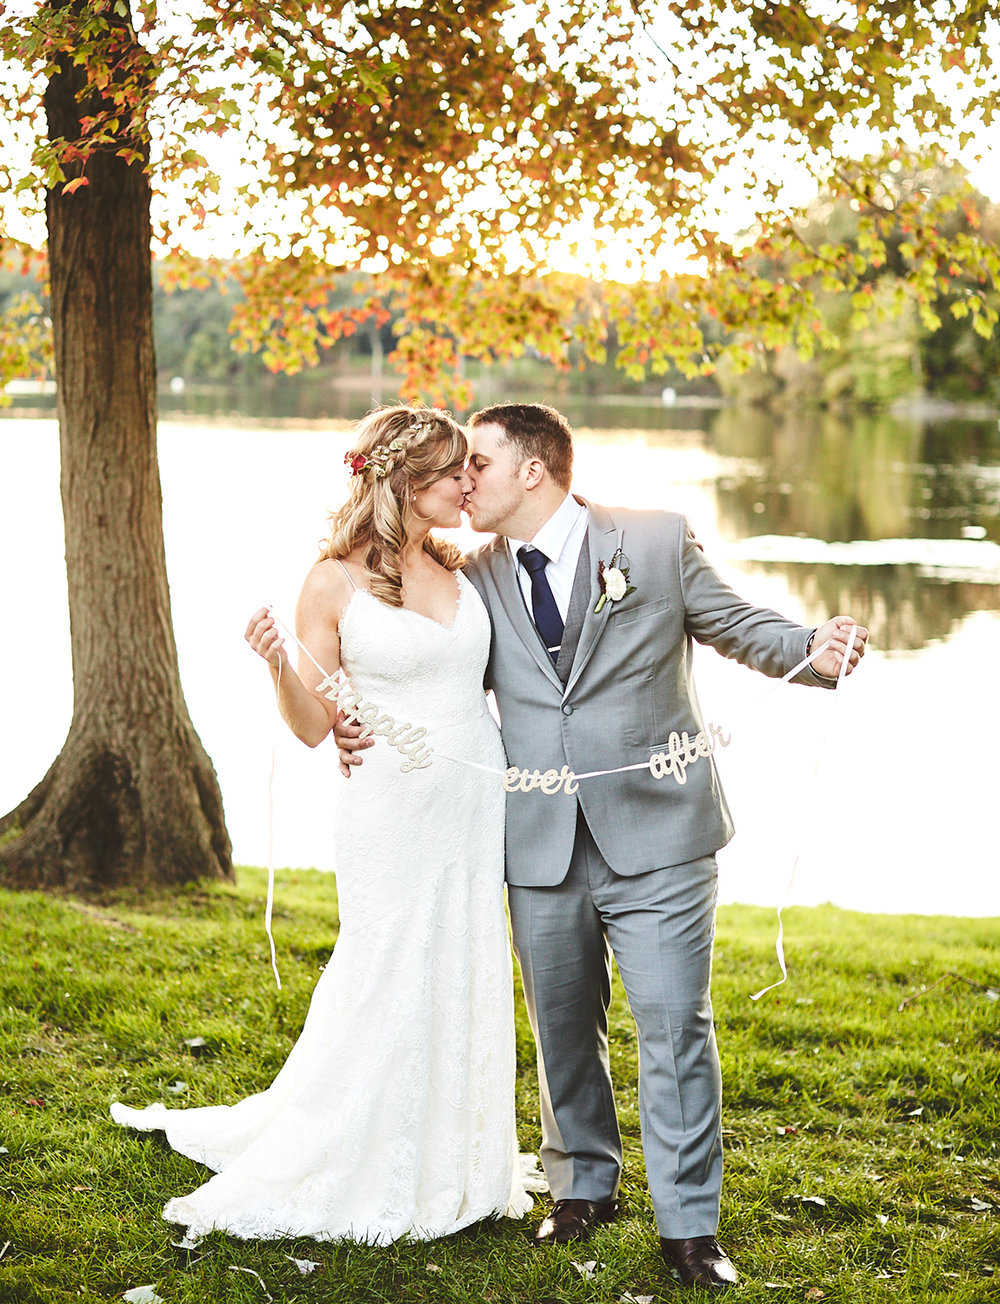 181013_IndianTrailClubFallWeddingPhotography_NJWeddingPhotographer_By_BriJohnsonWeddings_0106.jpg